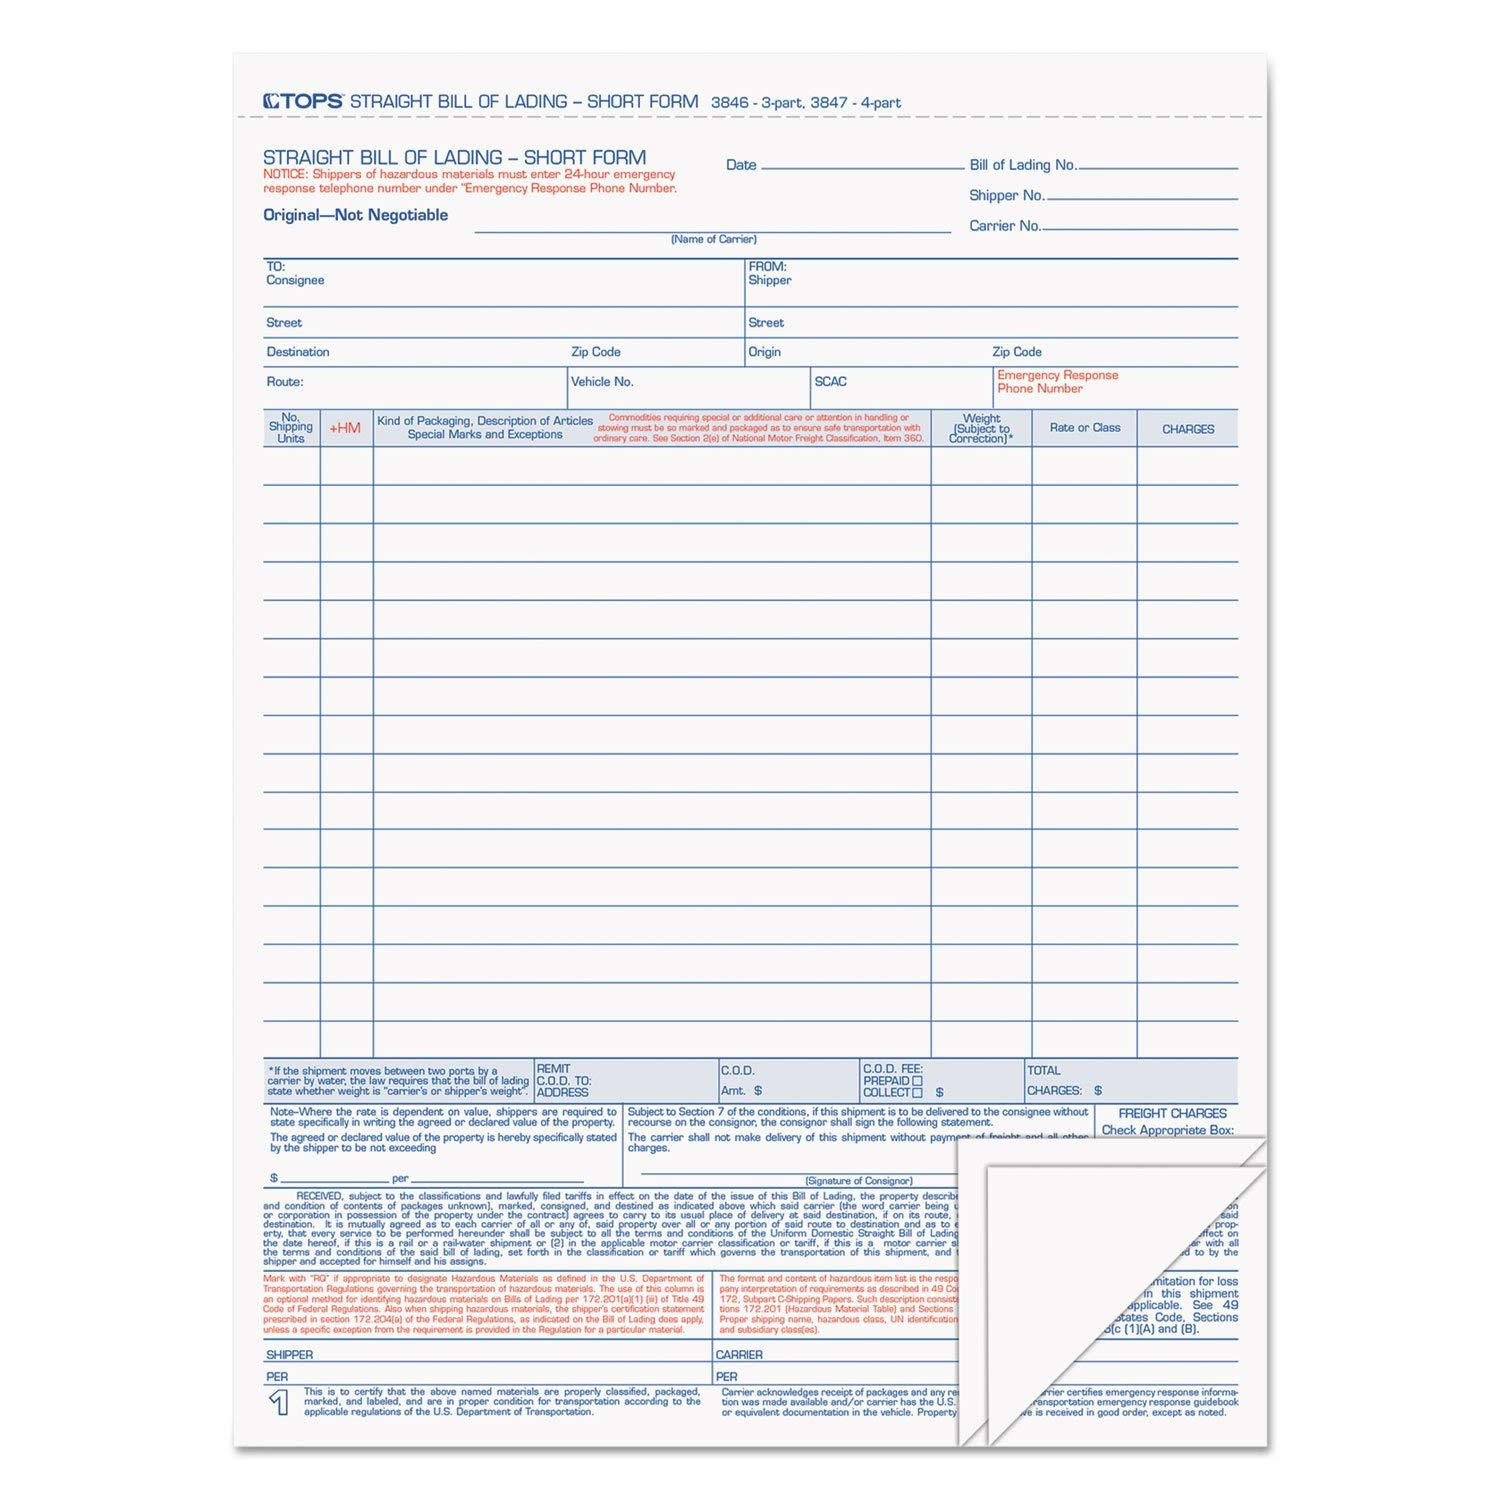 Tops 3846 Bill of Lading,16-Line, 8-1/2 x 11, Three-Part Carbonless, 50 Forms